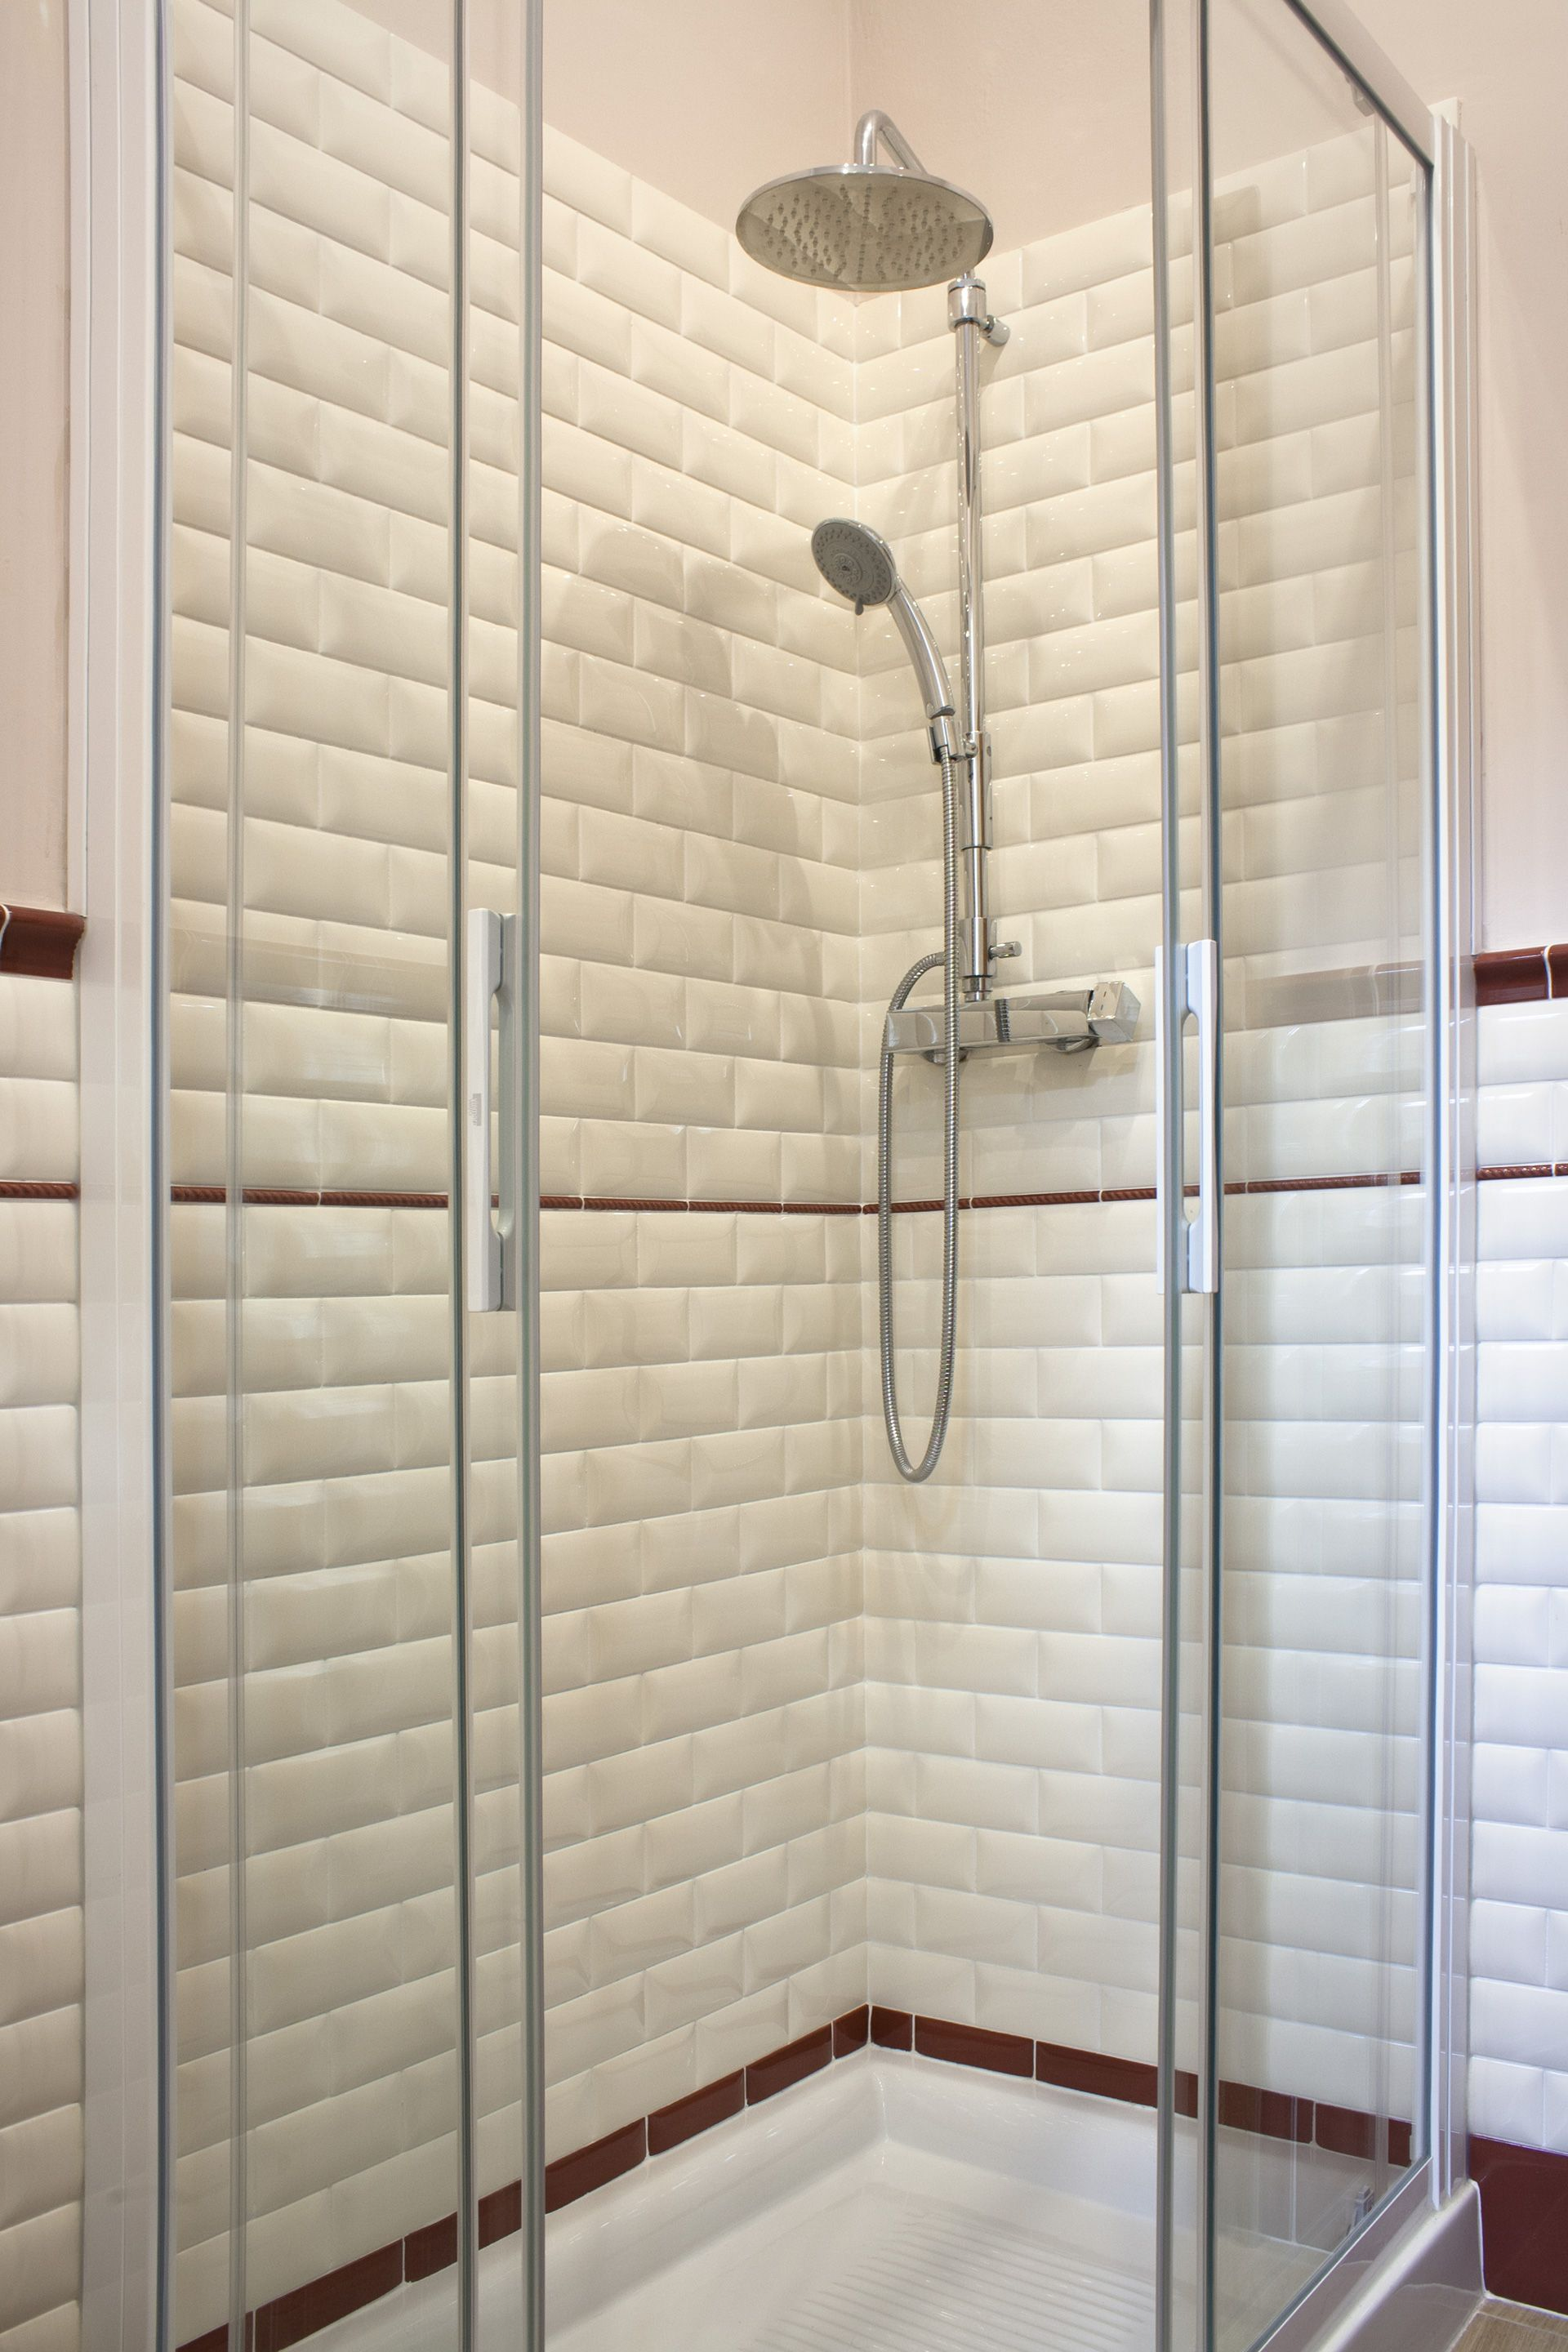 ceramic tile #bathroom wall #white wall # bone wall #bathroom ...